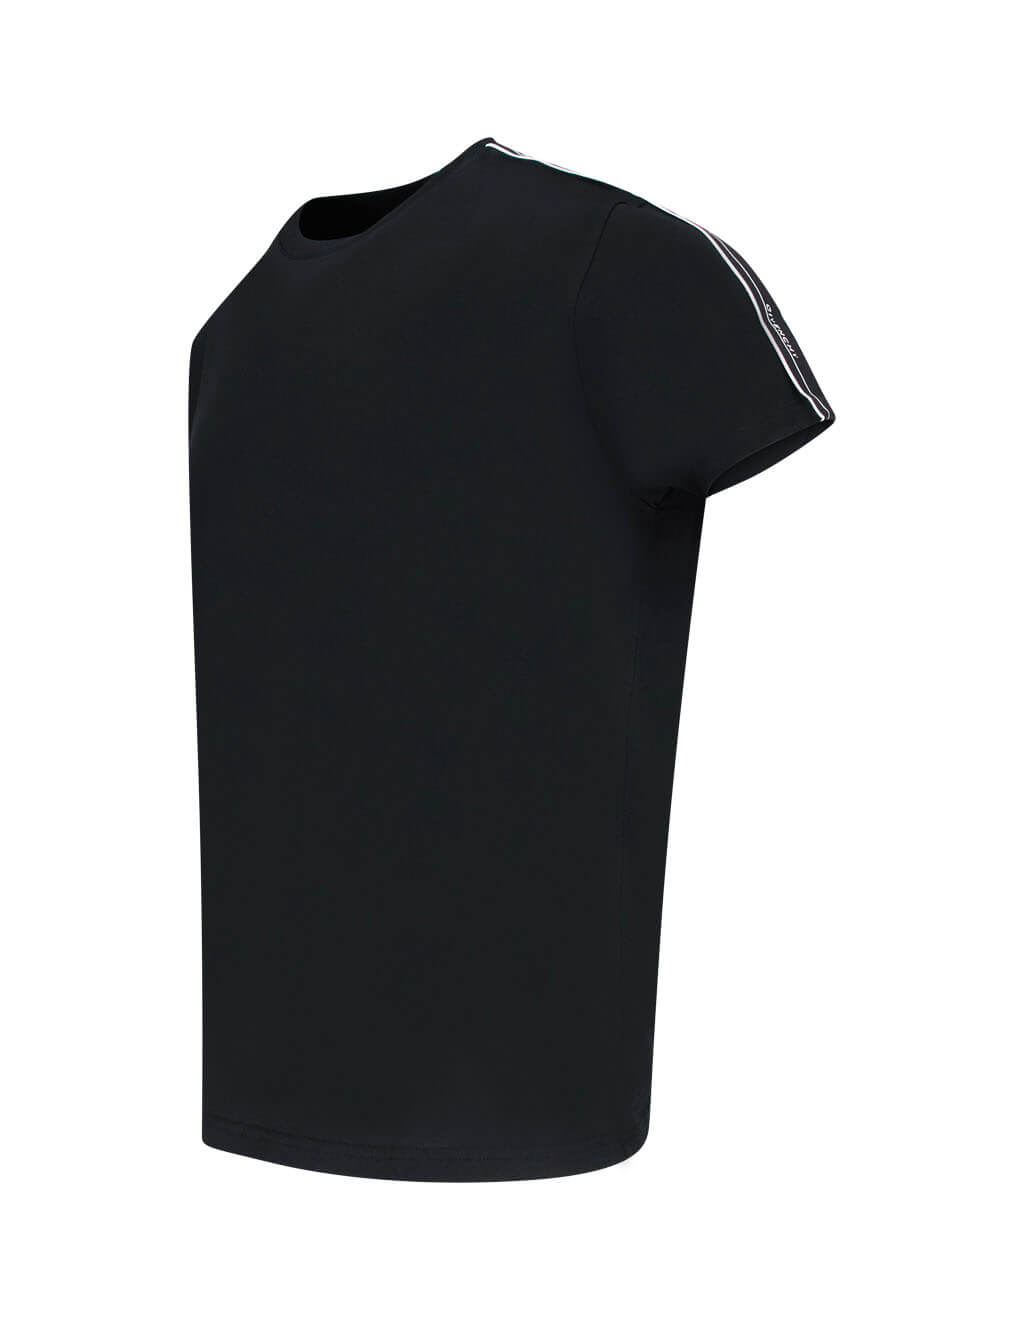 Givenchy Men's Giulio Fashion Black Band Sleeve T-Shirt BM70UJ3002 001